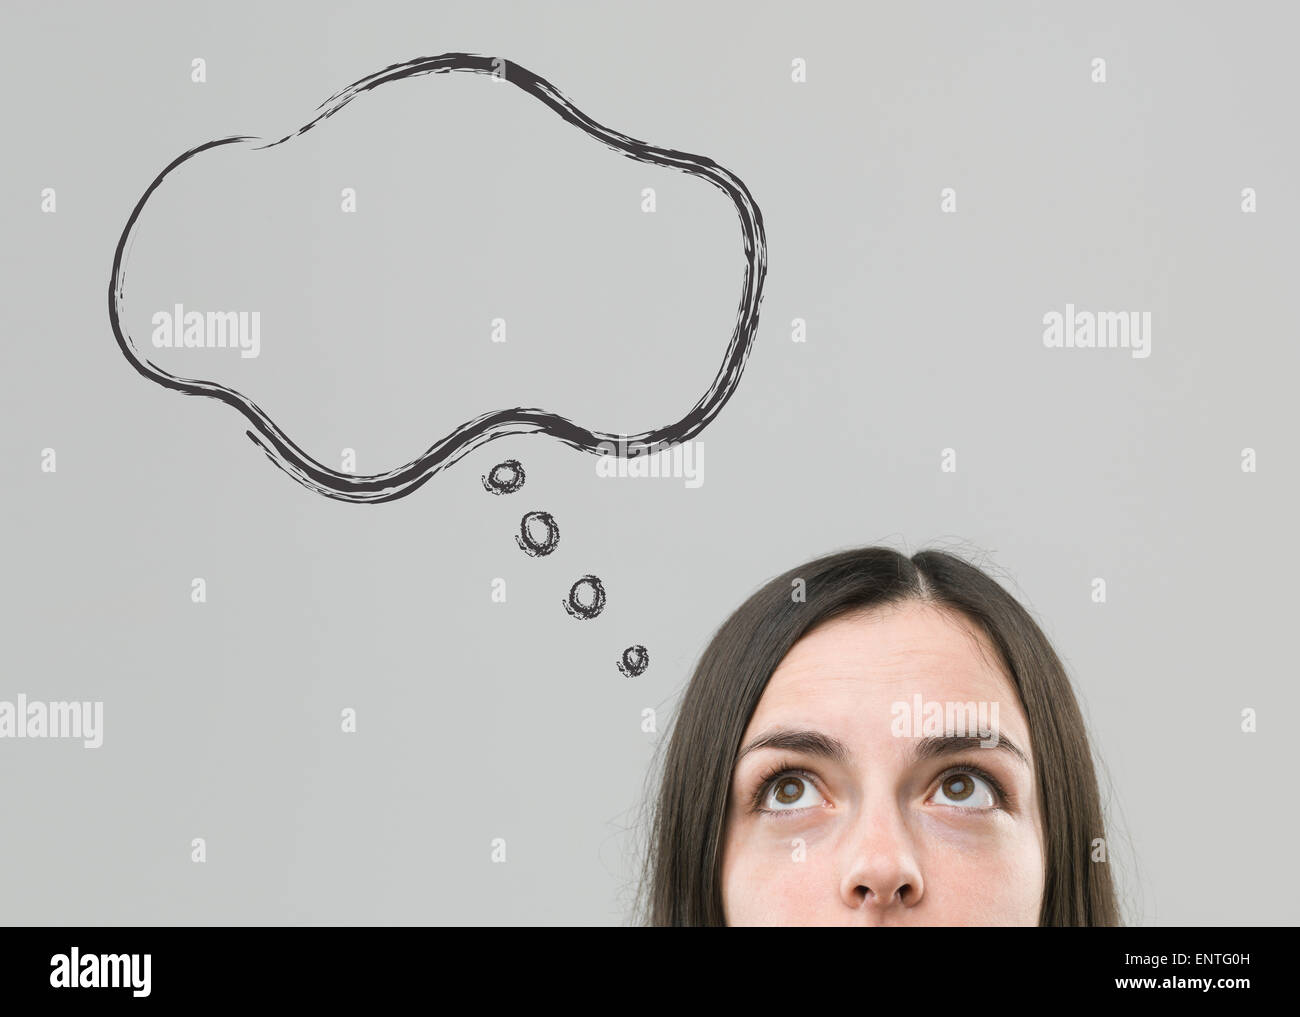 cropped view of young woman looking up on thinking empty bubble Stock Photo